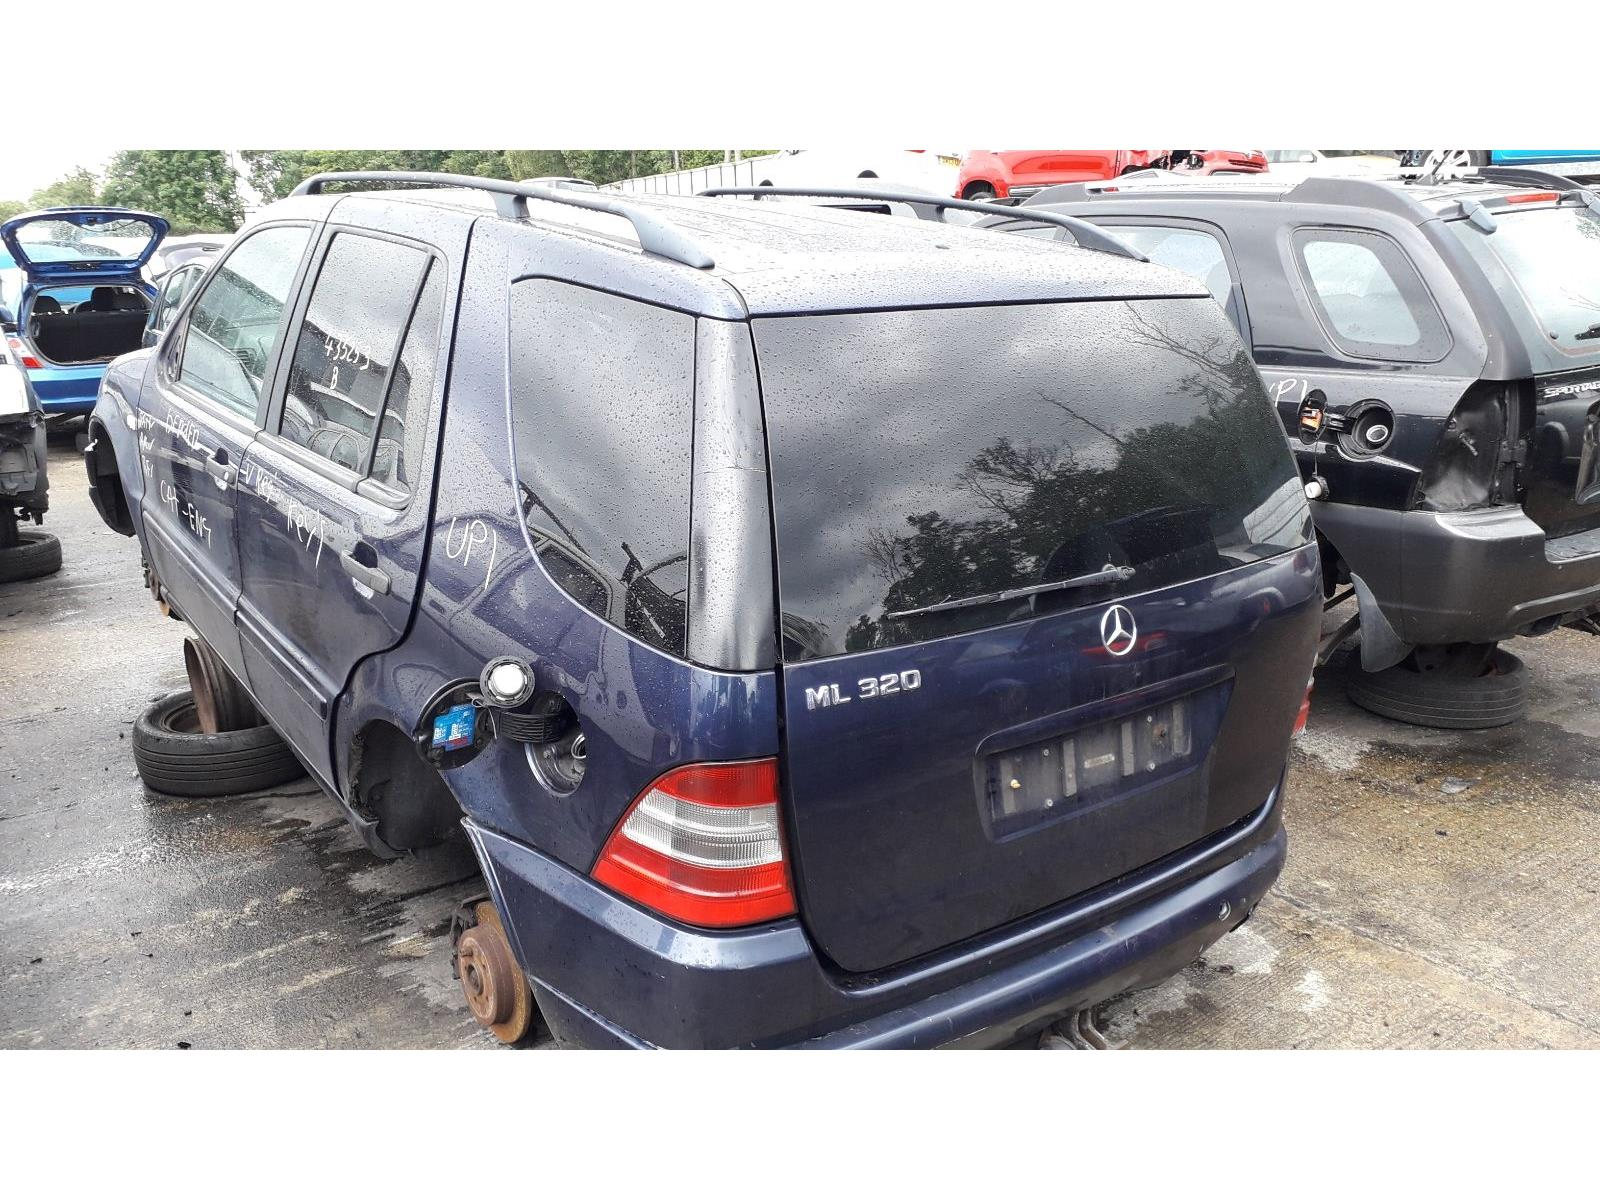 hight resolution of mercedes benz m class 1998 to 2005 ml320 5 door 4x4 scrap salvage car for sale auction silverlake autoparts